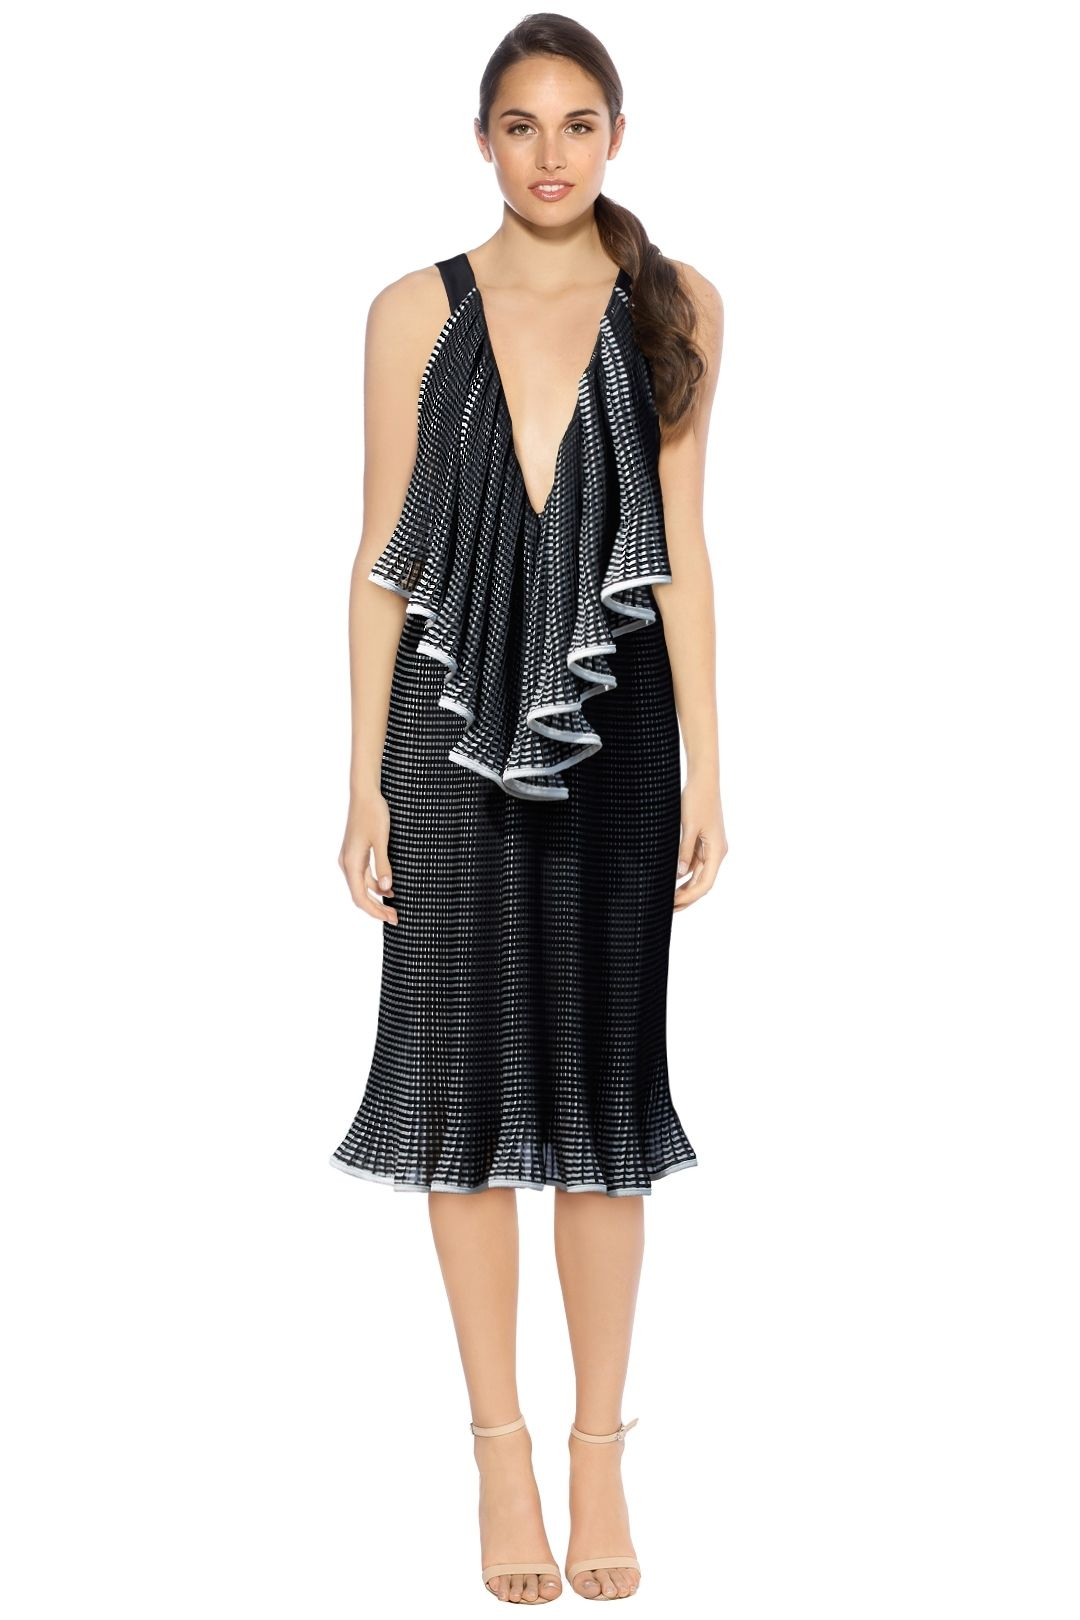 By Johnny - The Lucy Iris Pleat Dress - Black White - Front